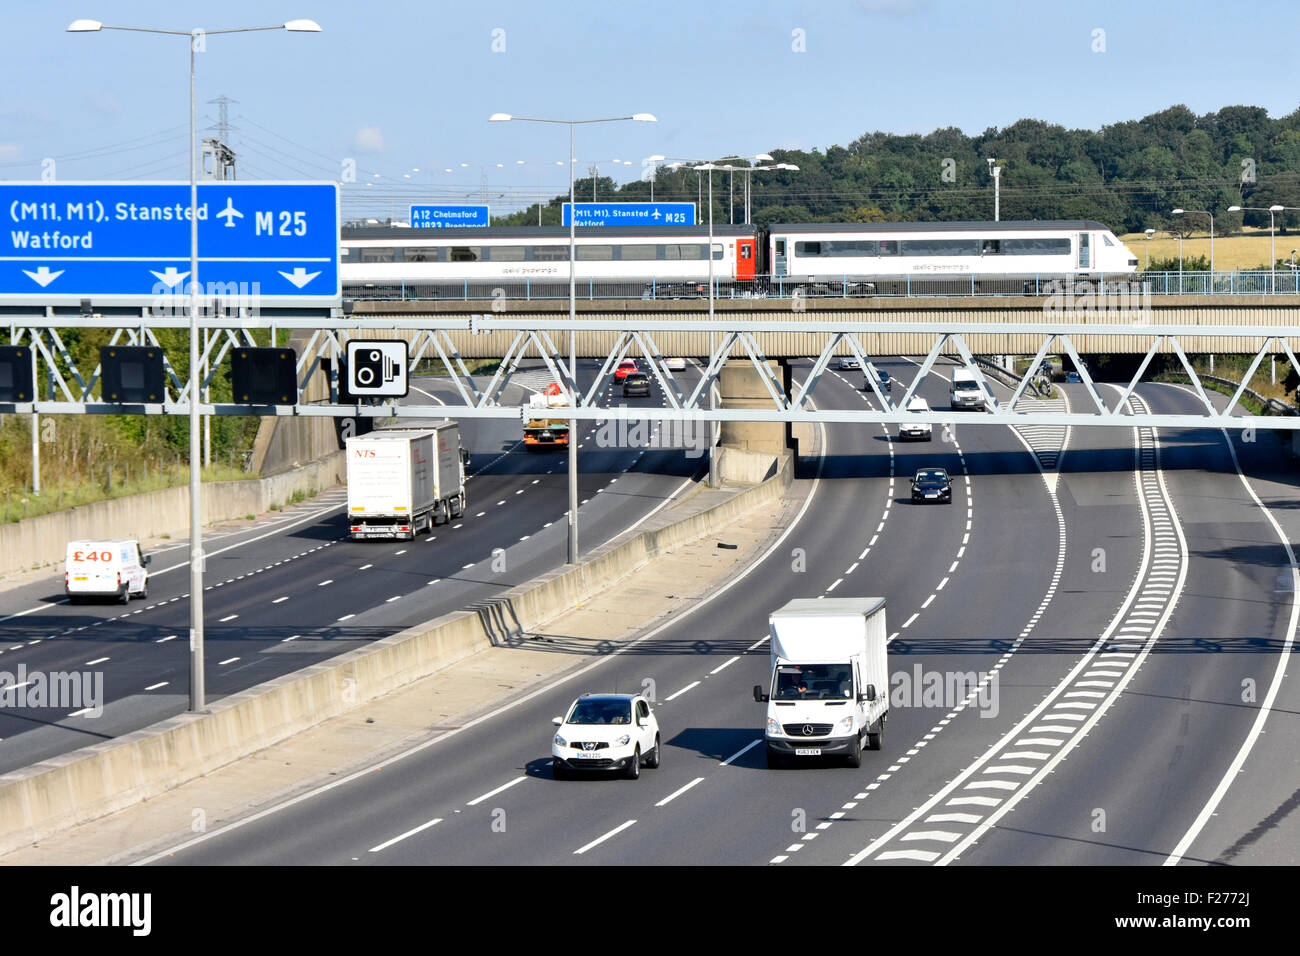 M25 motorway bridge and Greater Anglia inter city passenger train crossing above road traffic junction 28 at Brentwood - Stock Image